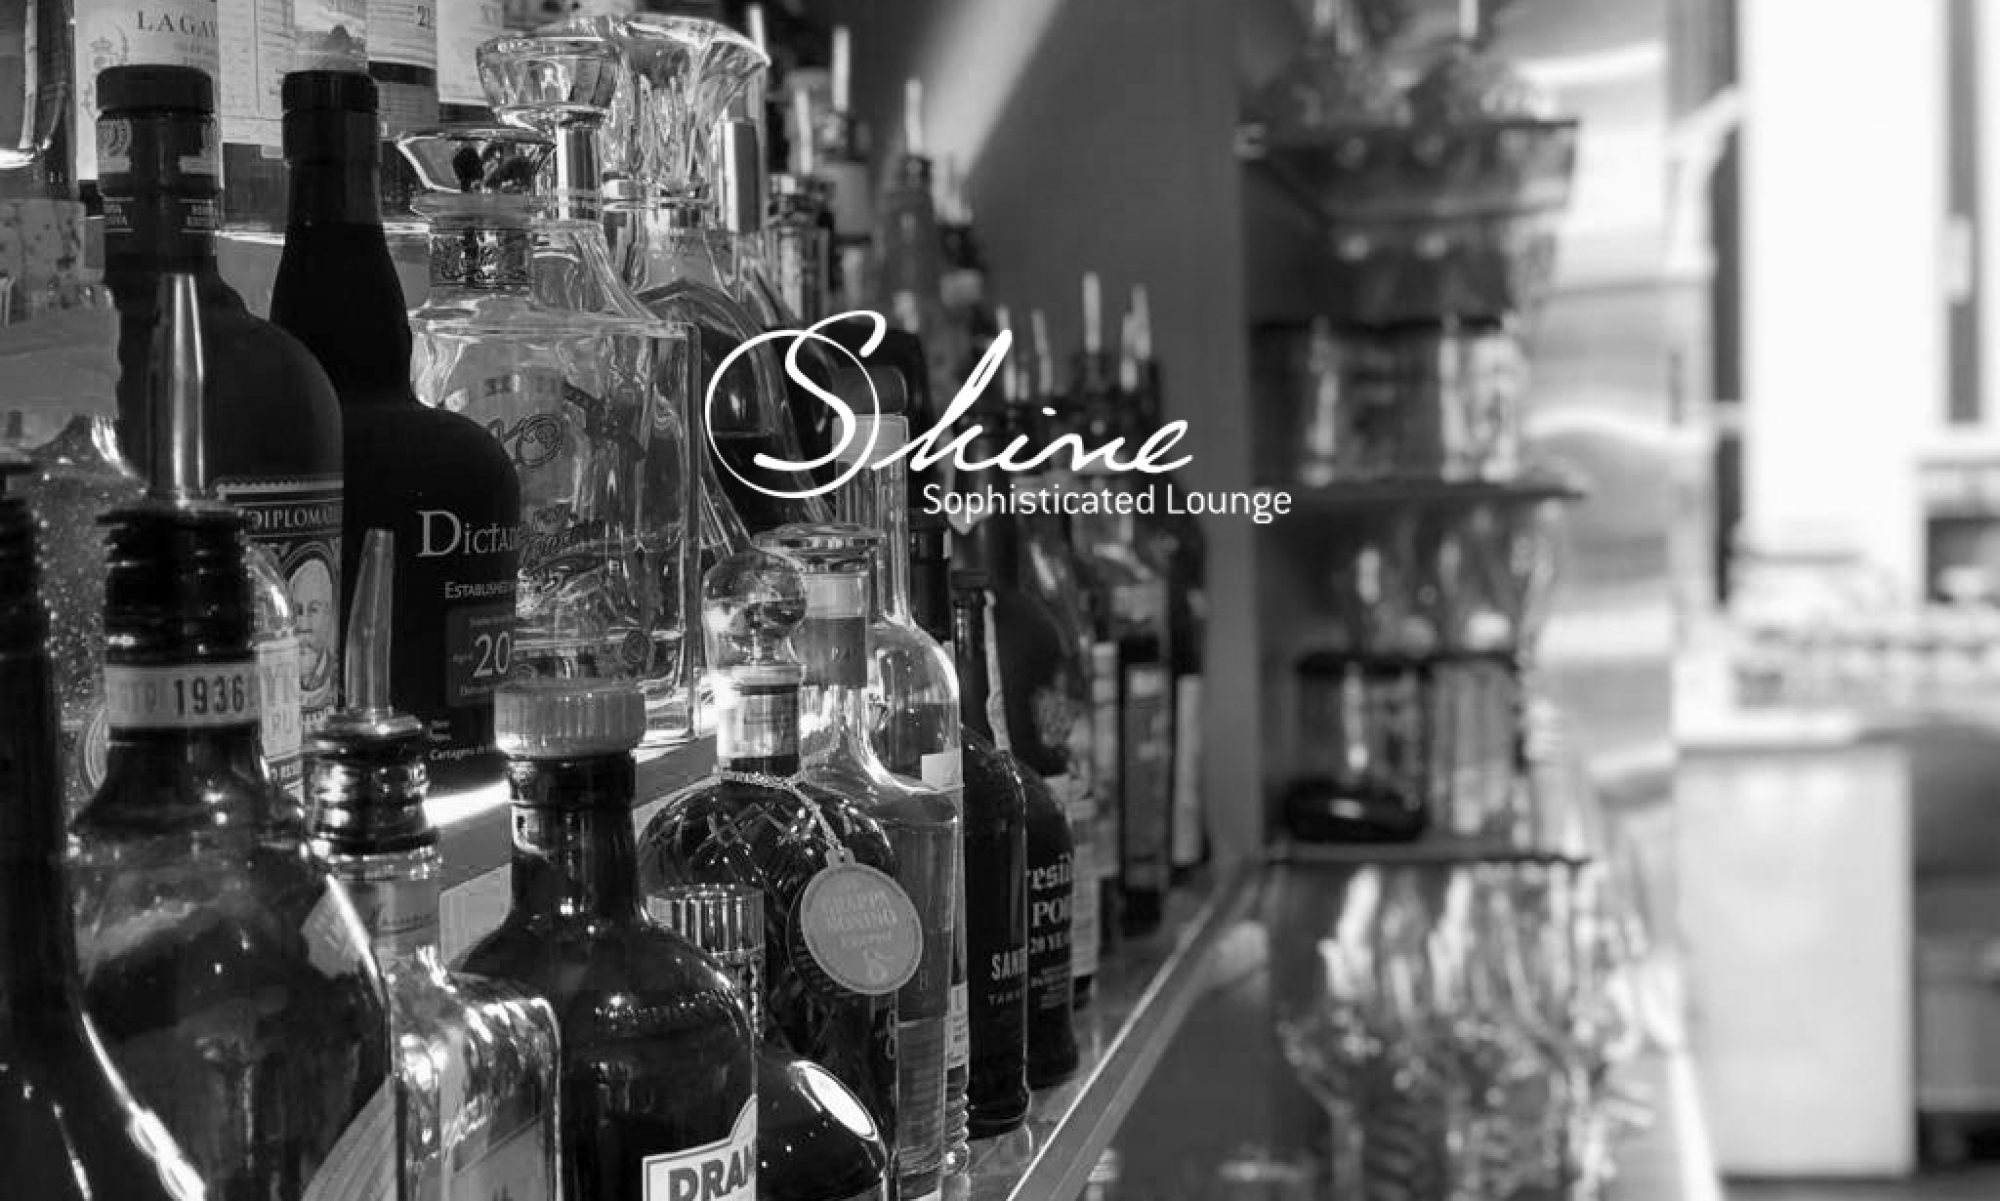 SHINE SOPHISTICATED LOUNGE